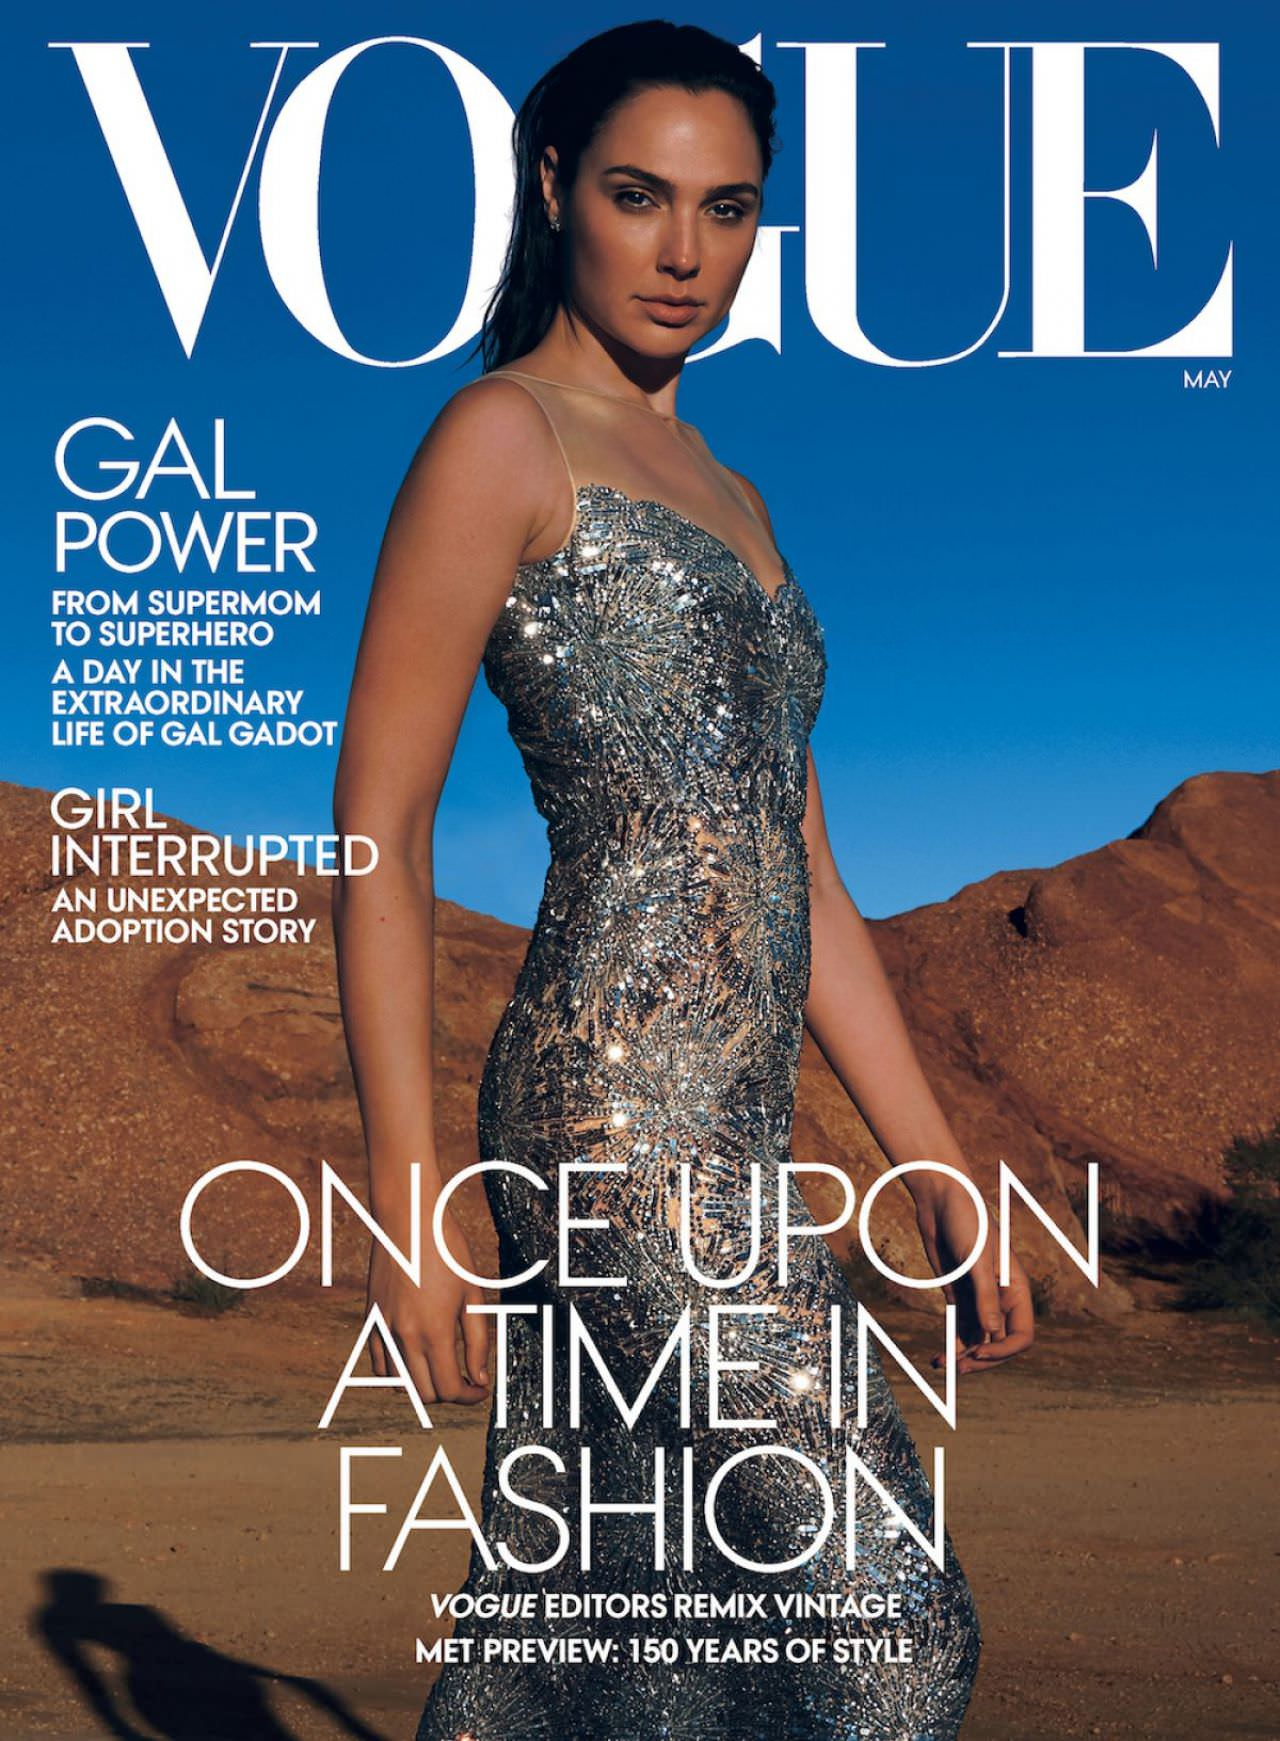 Gal Gadot Posing for the May 2020 Cover of Vogue